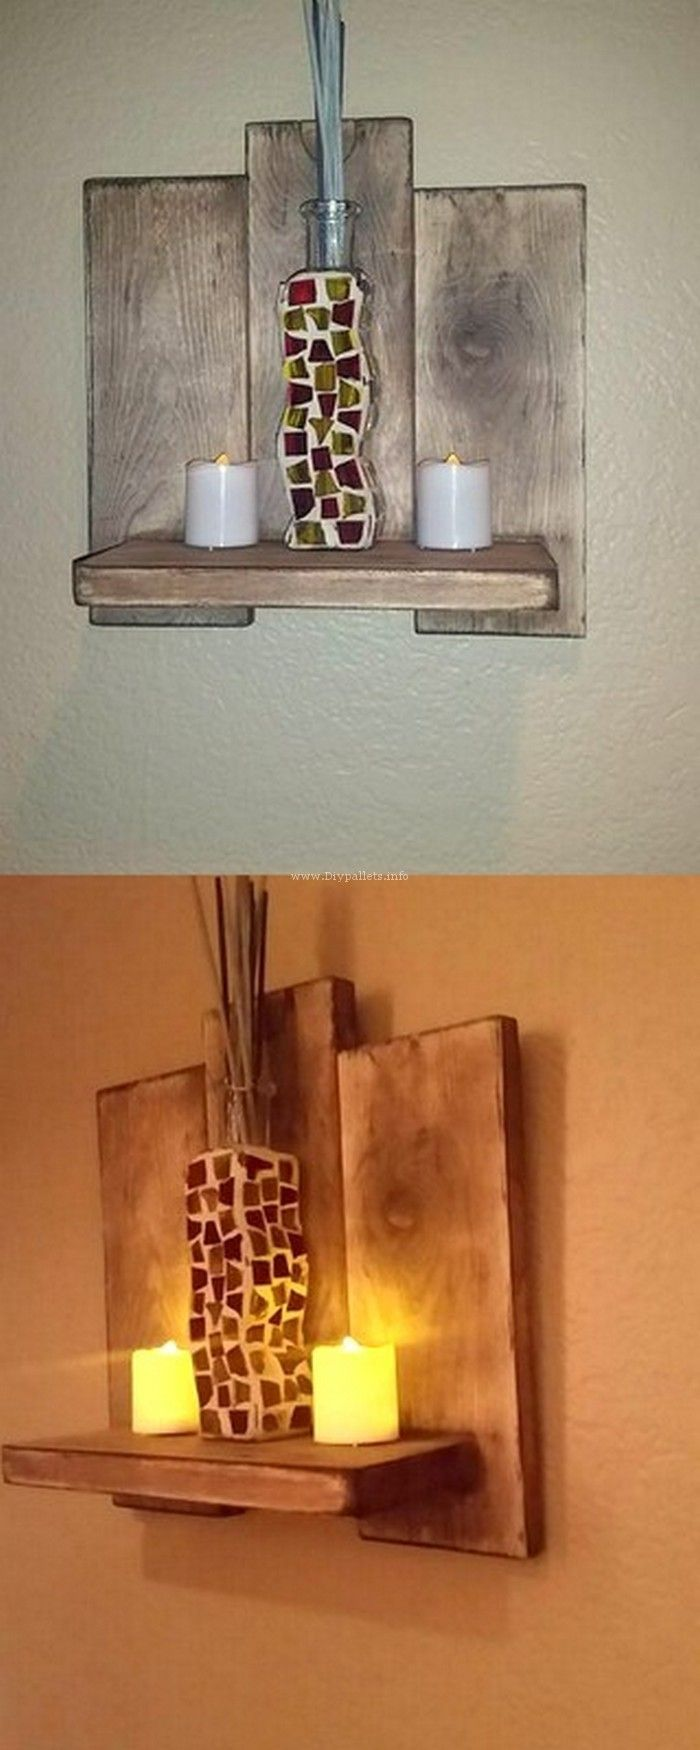 25 Incredible And Afordable Diy Pallet Ideas Diy Wood Shelves Pallet Furniture Outdoor Wood Pallet Projects